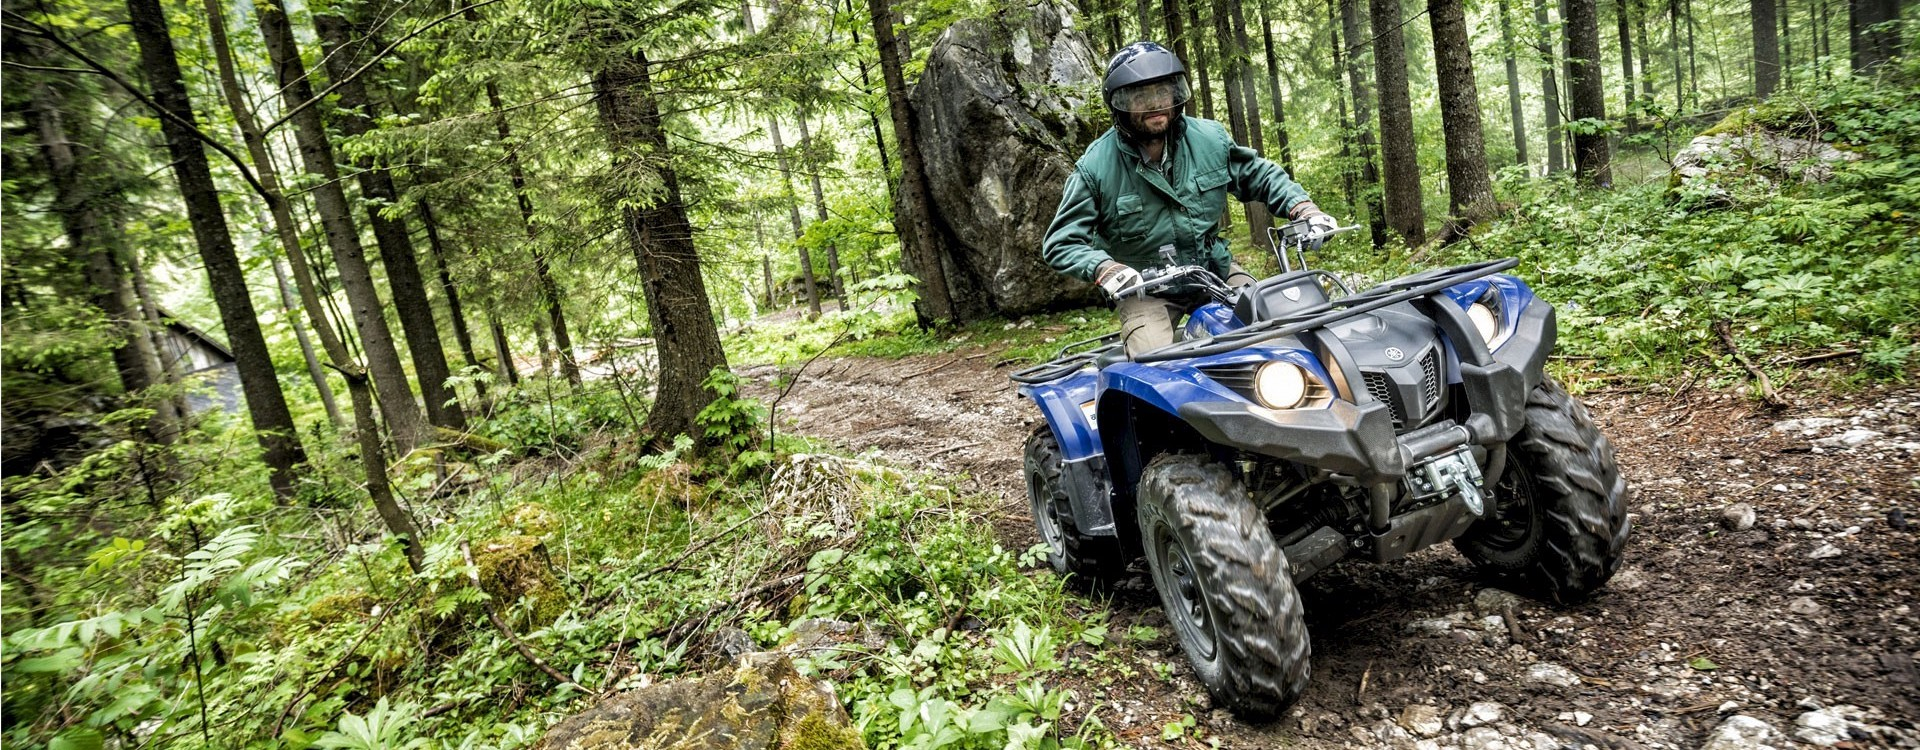 Quad Tour Chanti Adventure